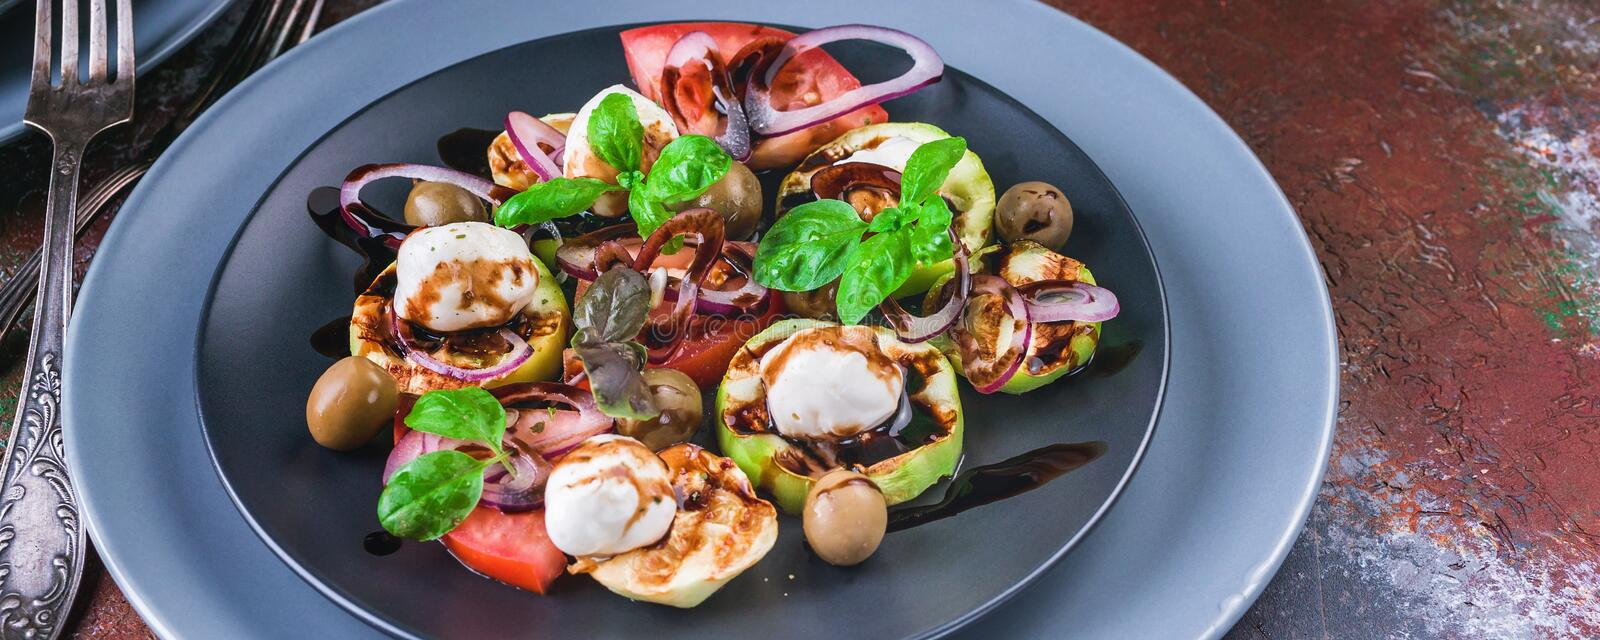 Food banner salad with grilled vegetables, mozzarella, olives, red onion, basil and balsamic sauce on a rust background. stock image